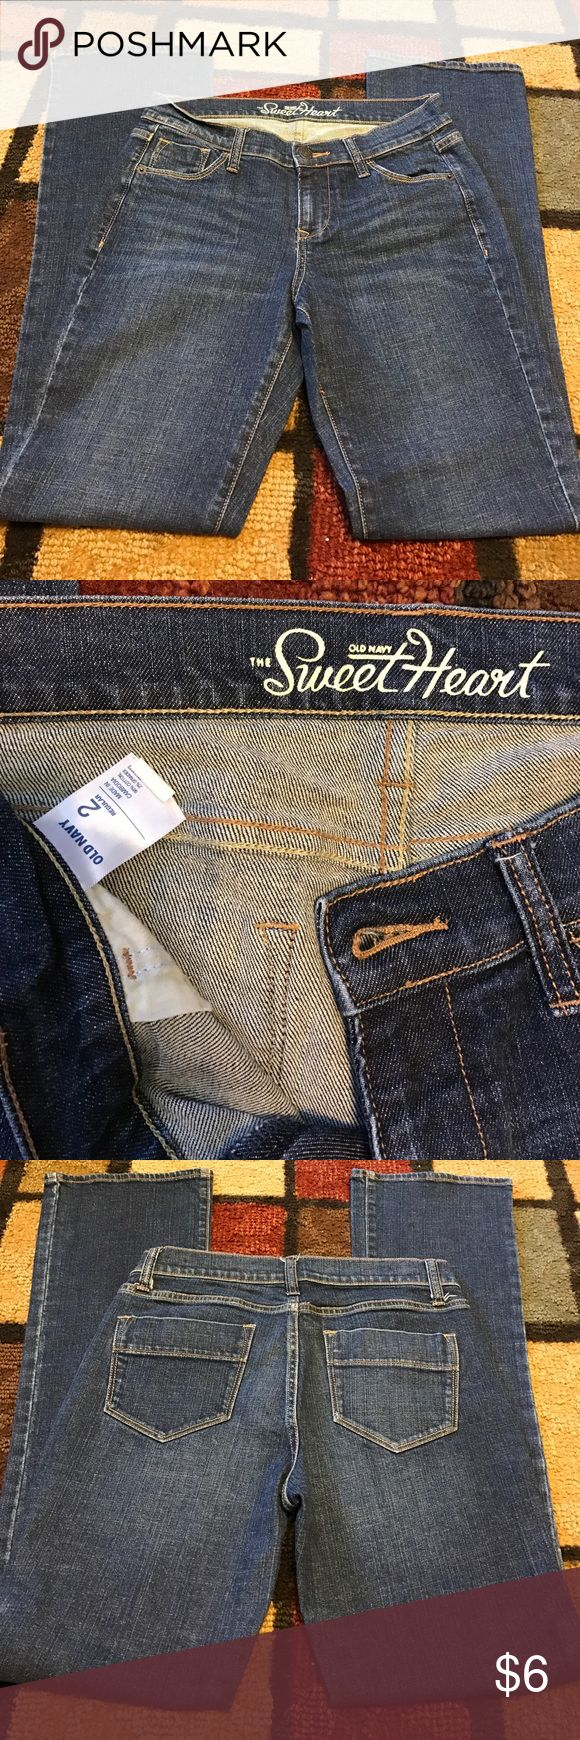 """The sweet heart old navy jeans size 2 regular The sweet heart....old navy...size 2 regular.... good condition...approx 30"""" inseam Old Navy Jeans Boot Cut"""